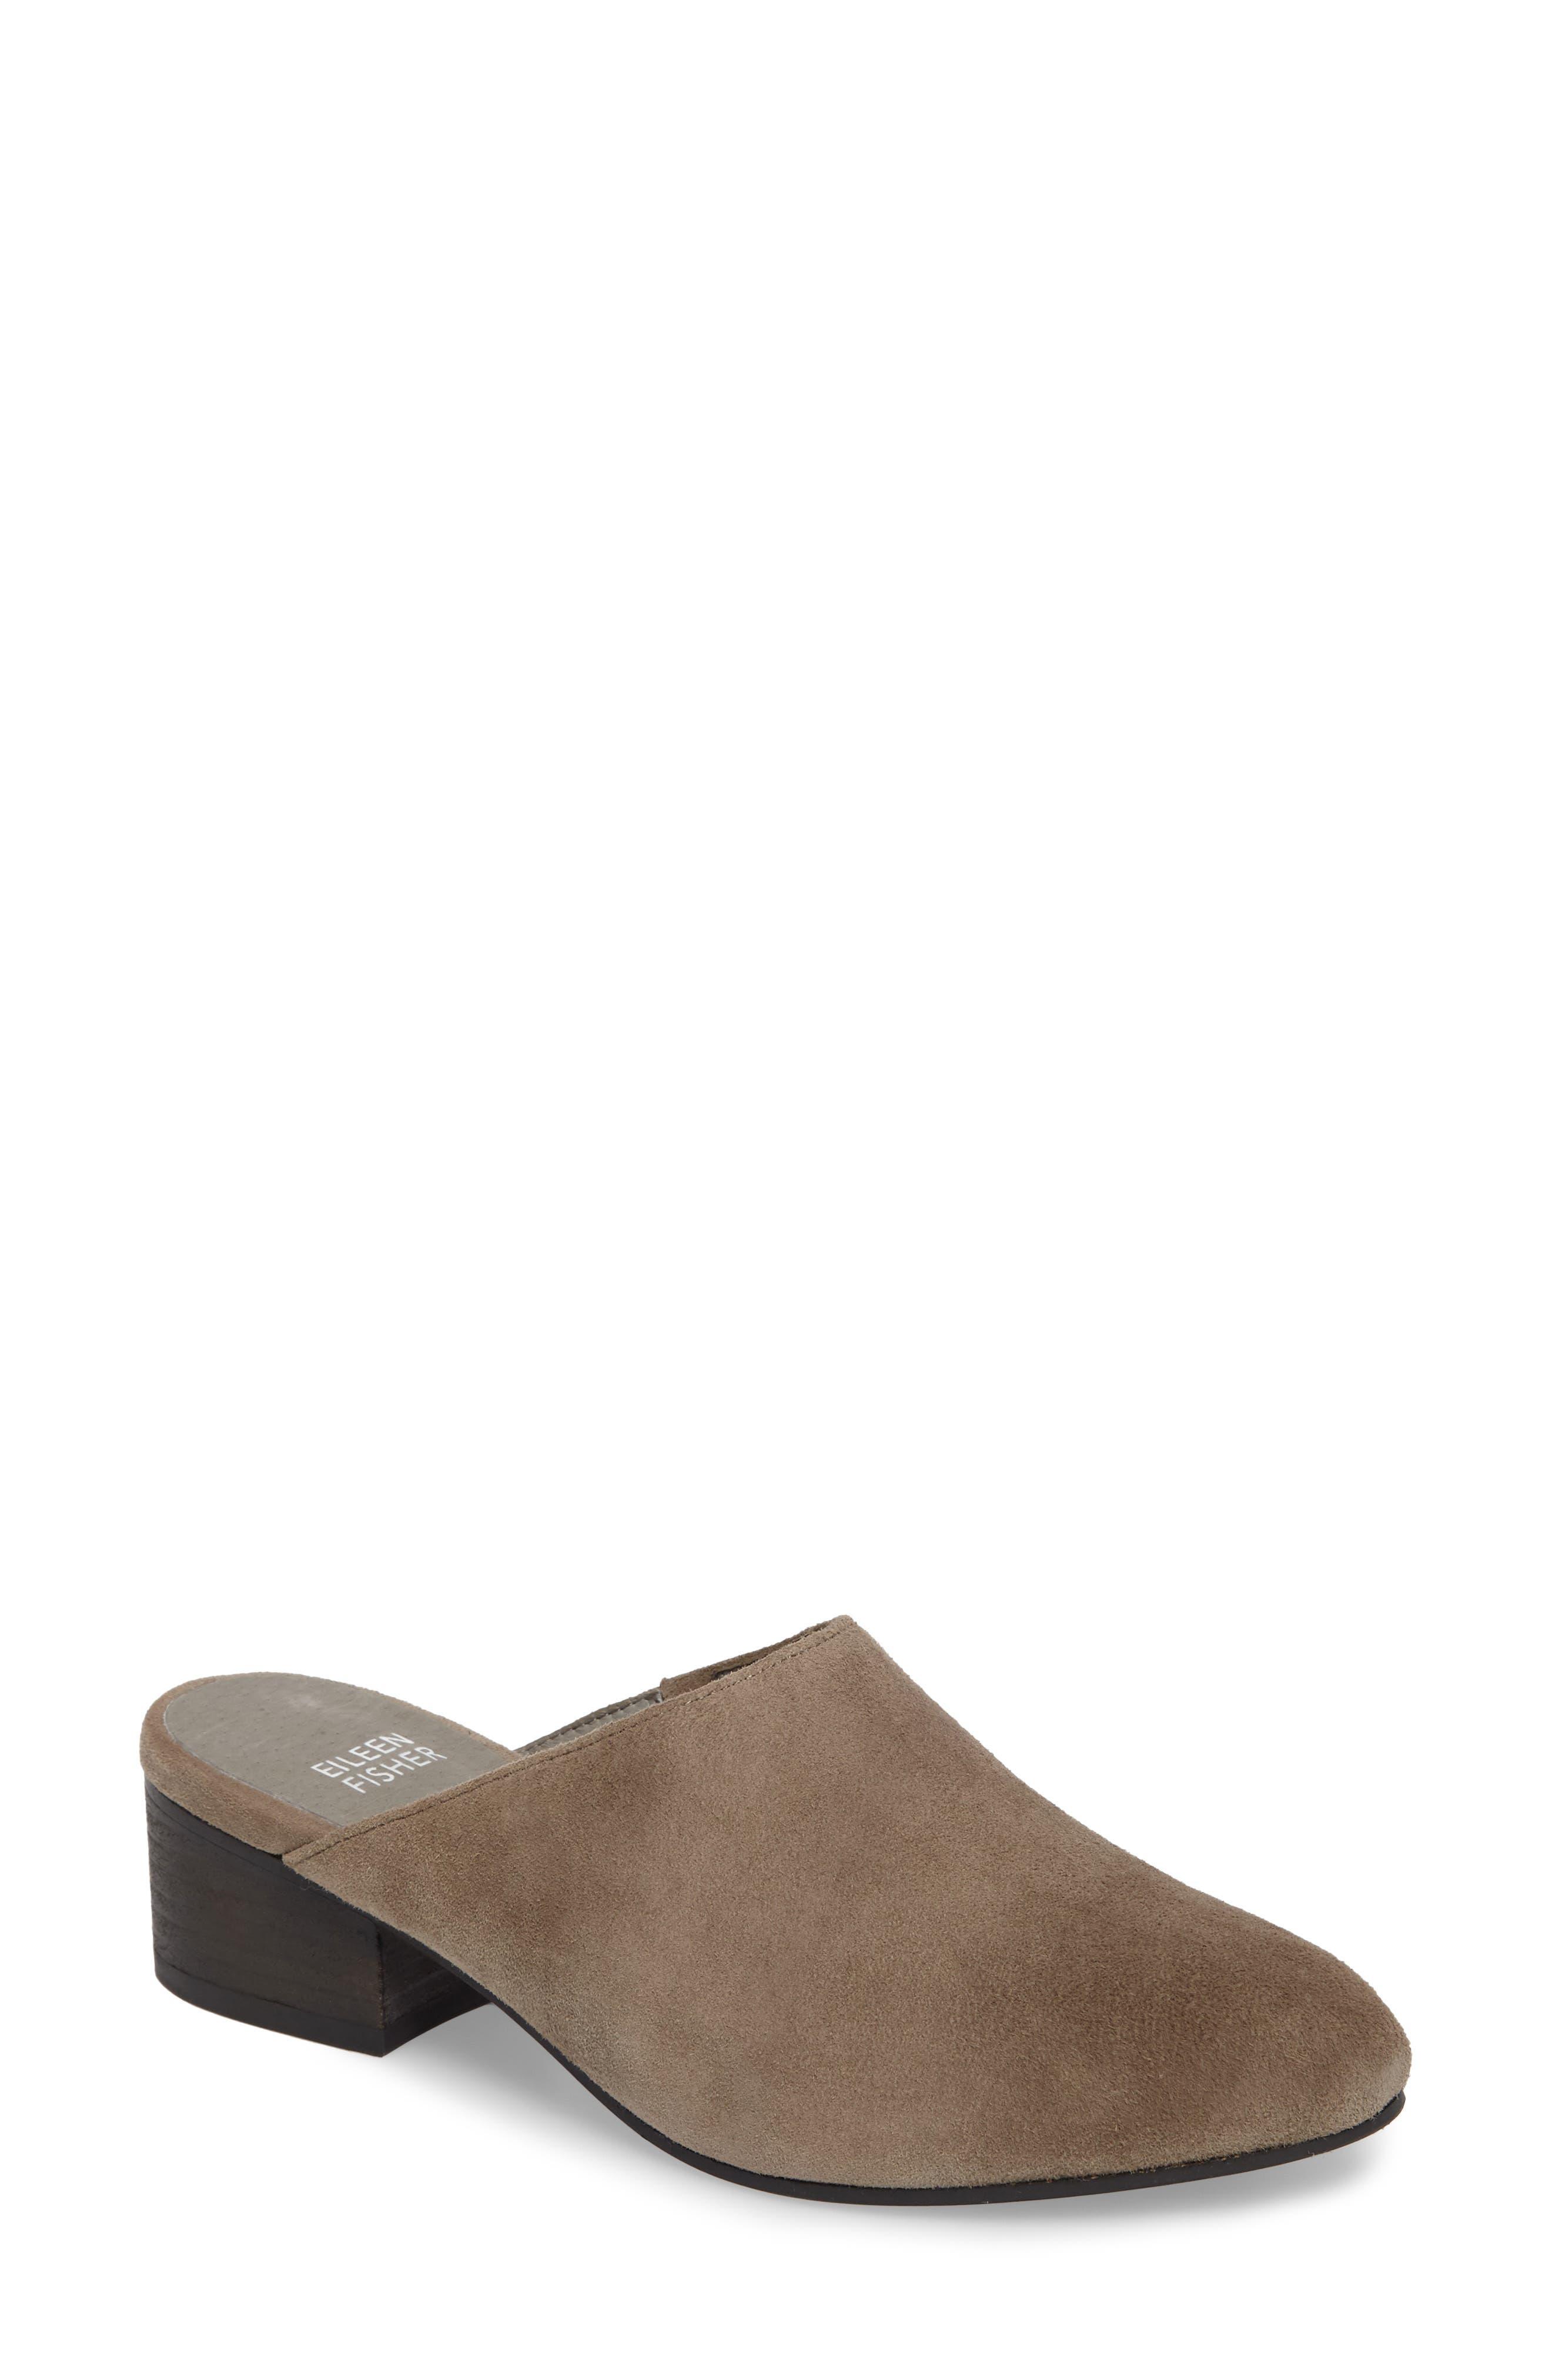 Silvia Mule,                             Main thumbnail 1, color,                             Shadow Suede